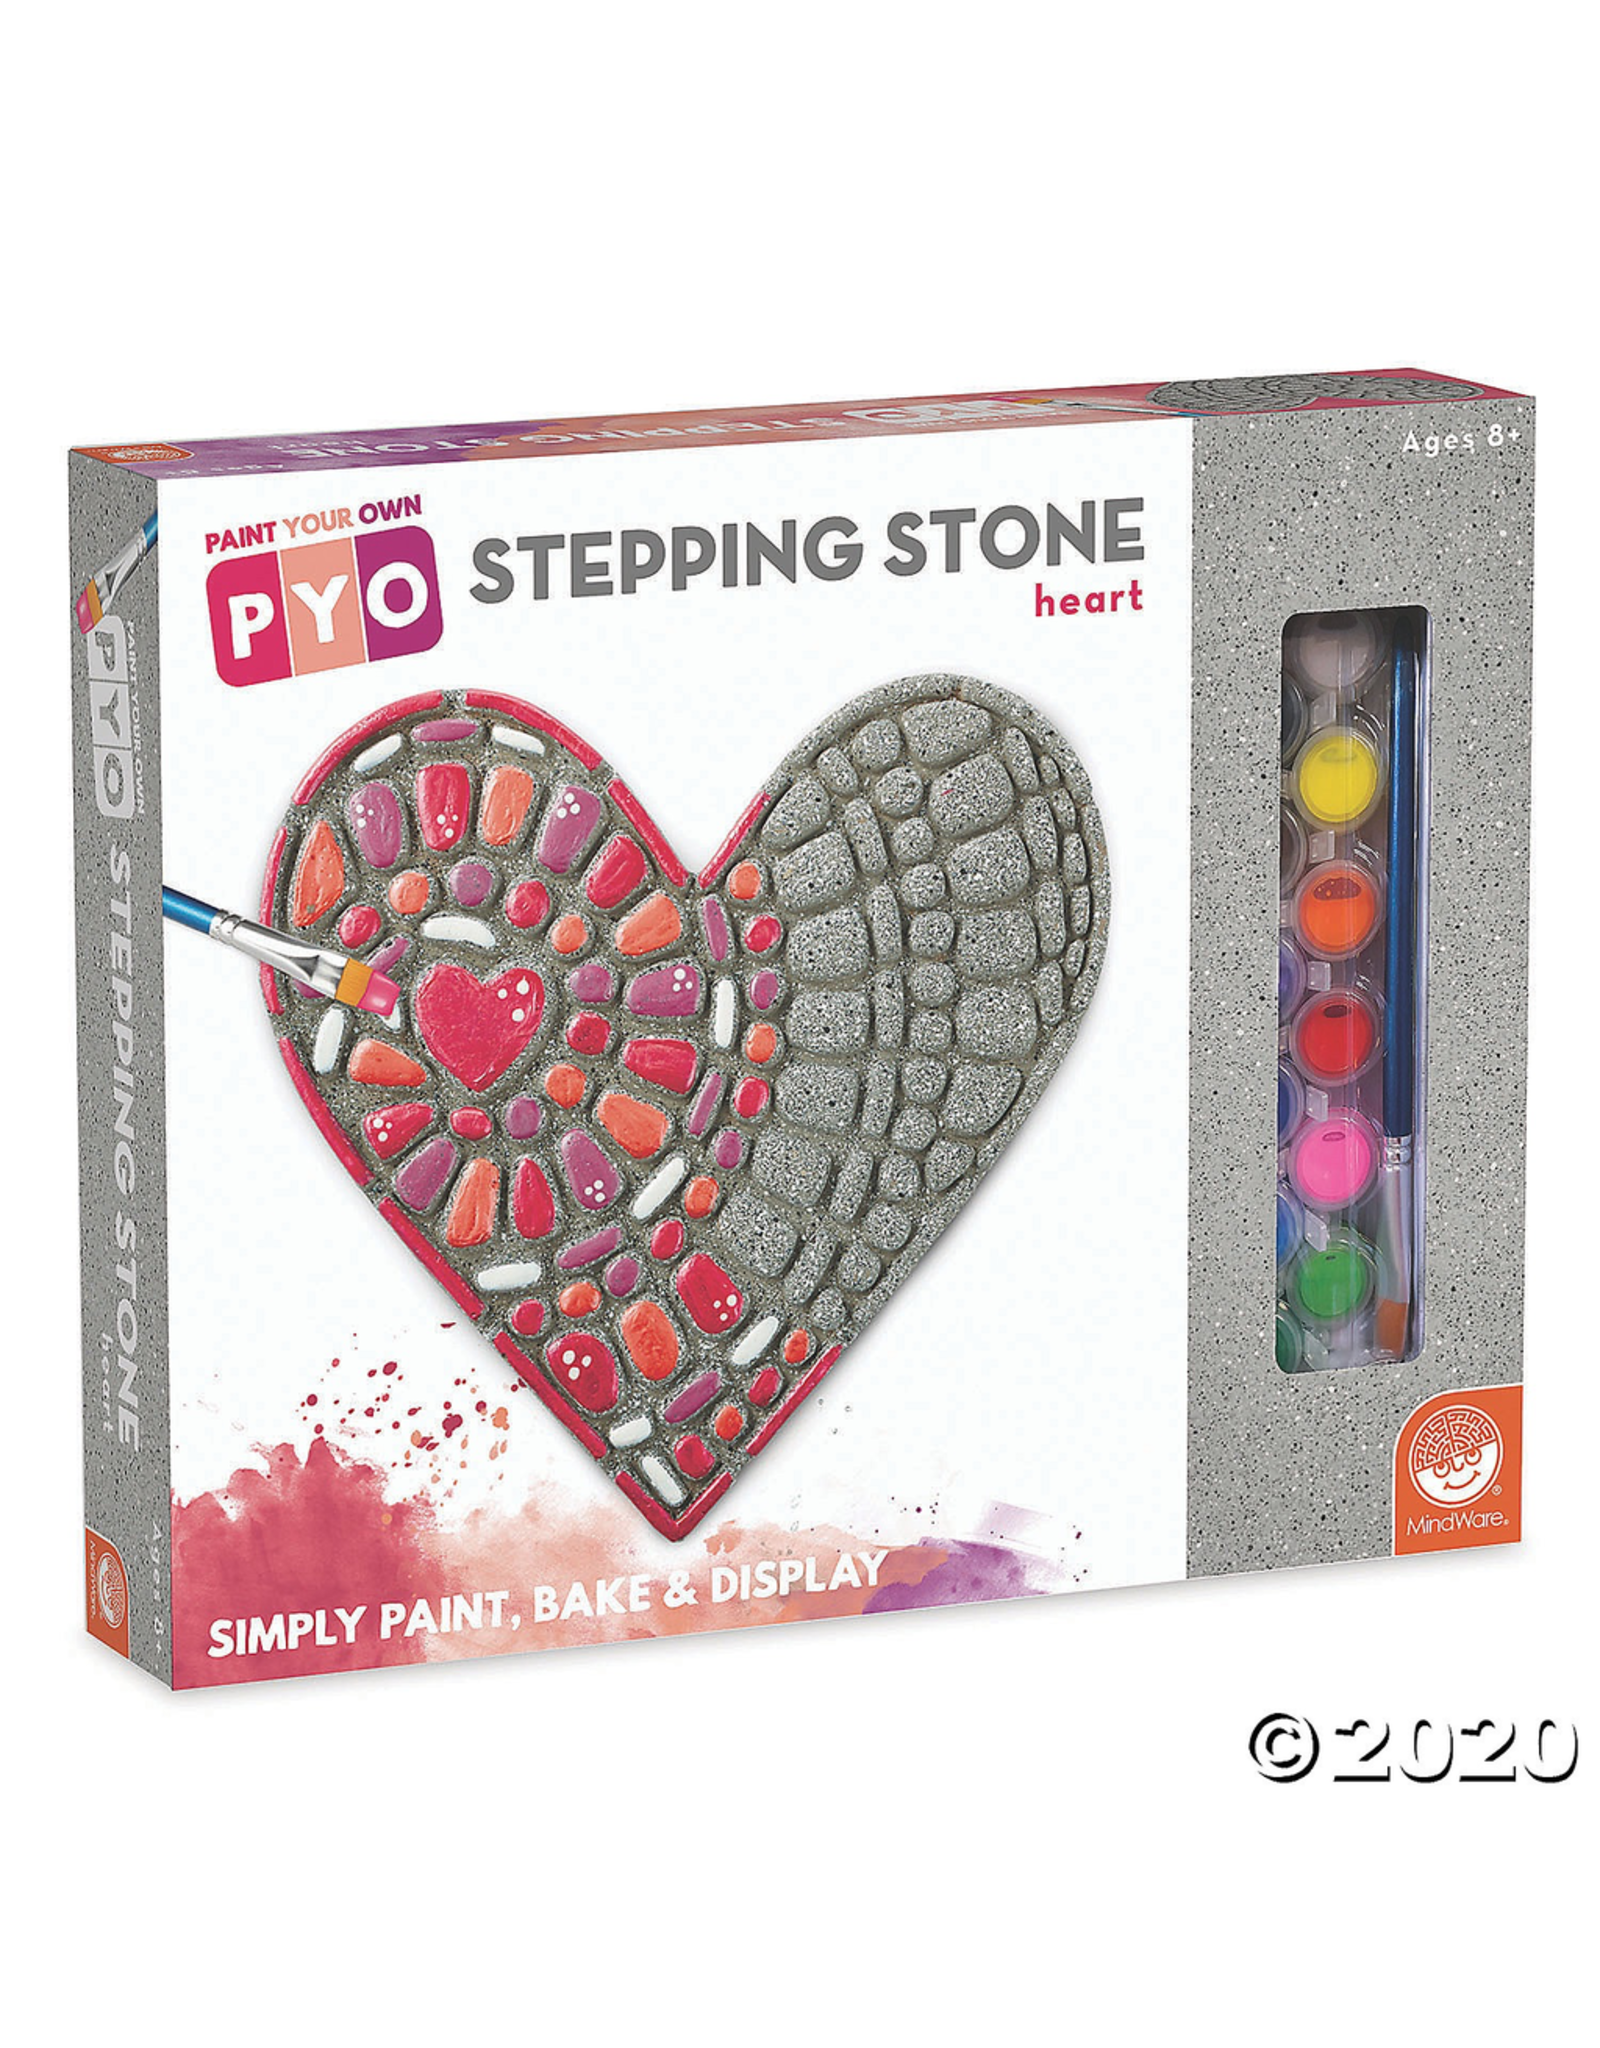 MindWare Paint Your Own Stepping Stone - Heart